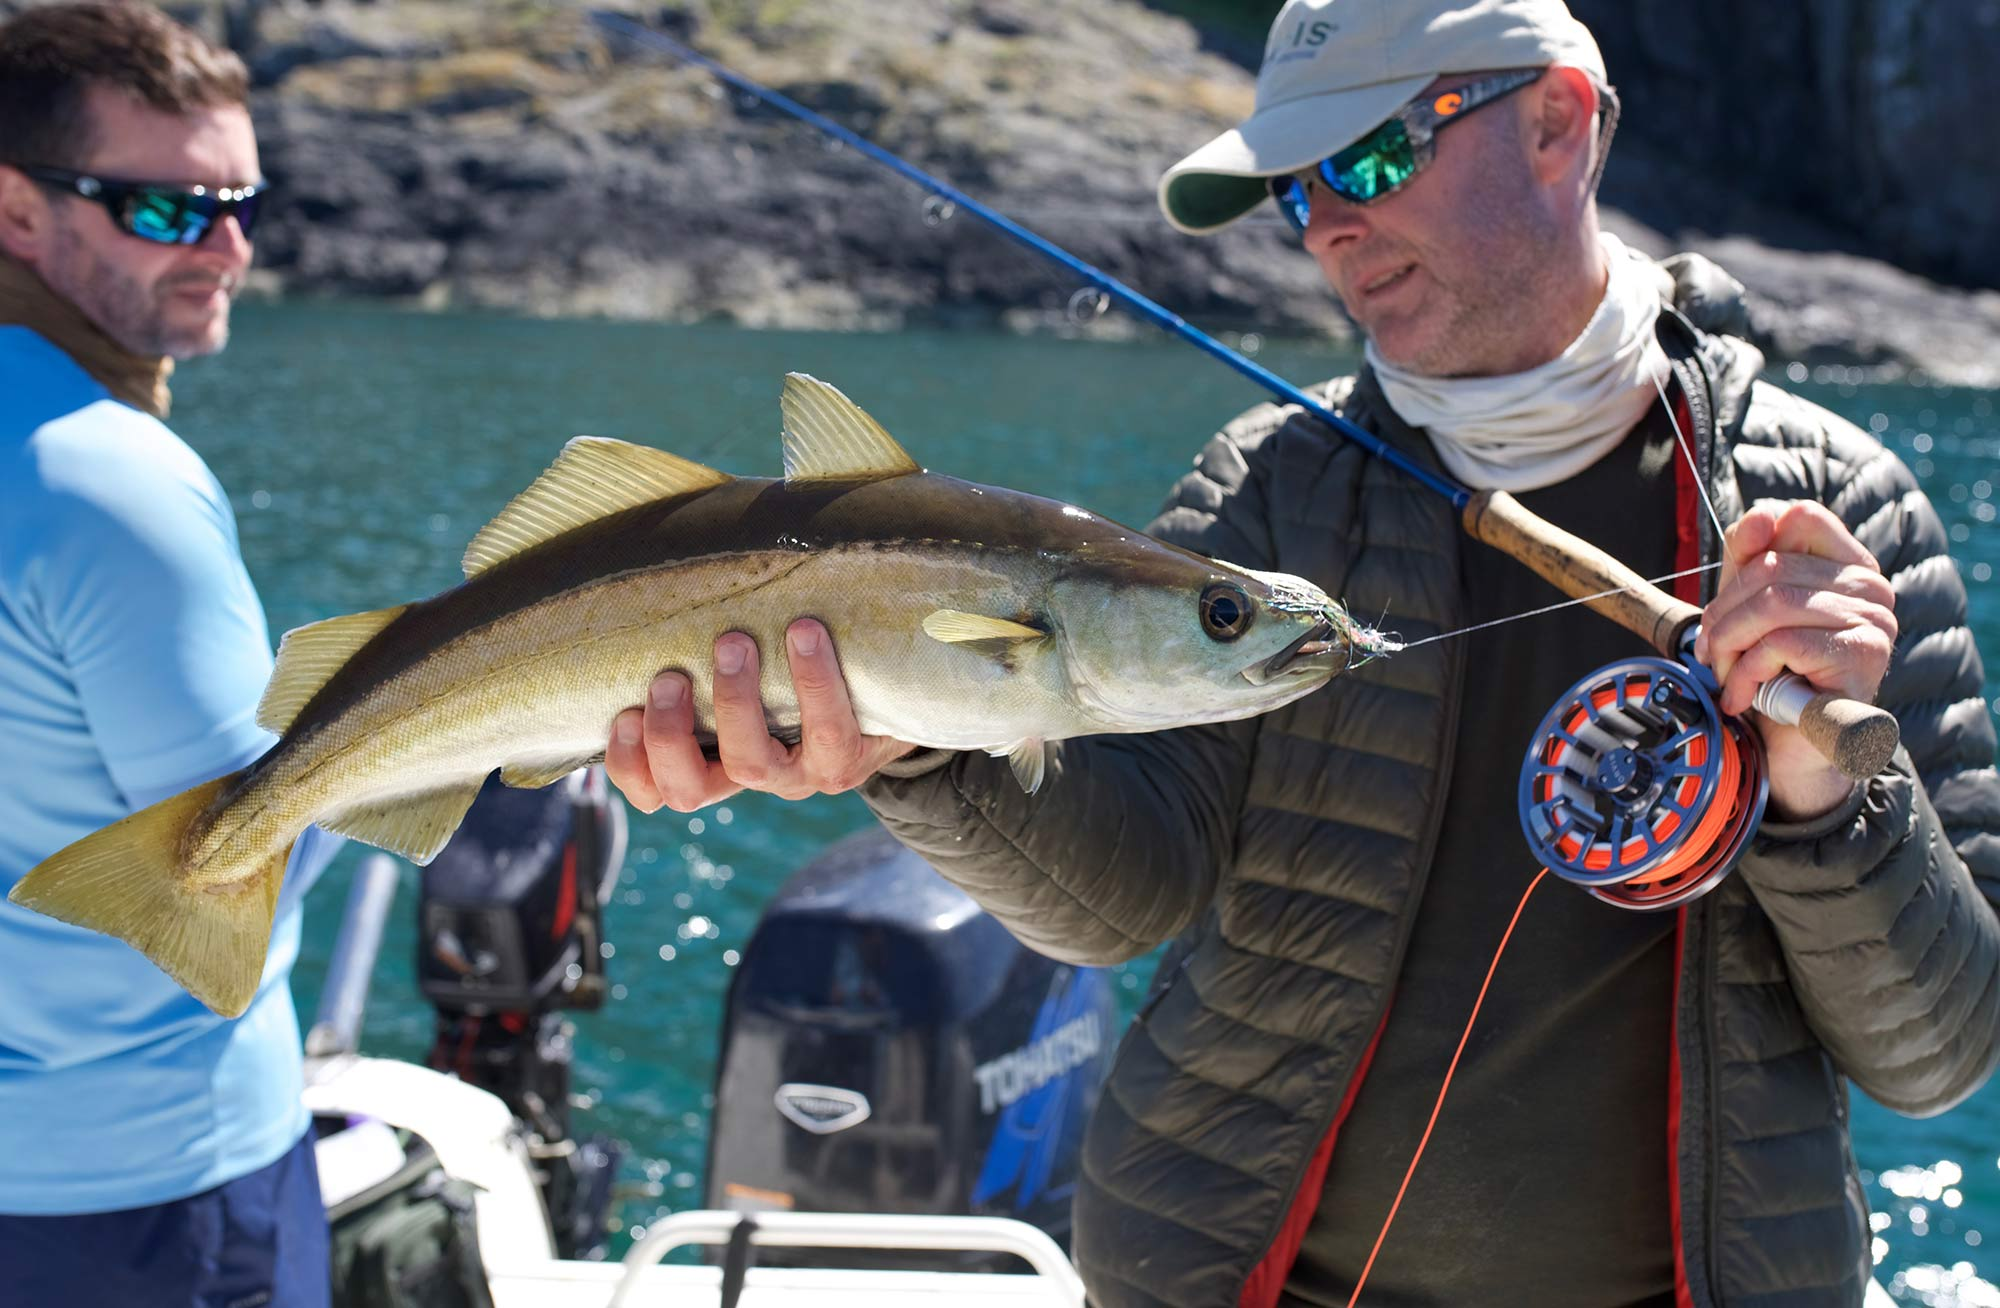 Fly fishing in the sea for pollock shore spots in scotland for Fly fishing vacation packages